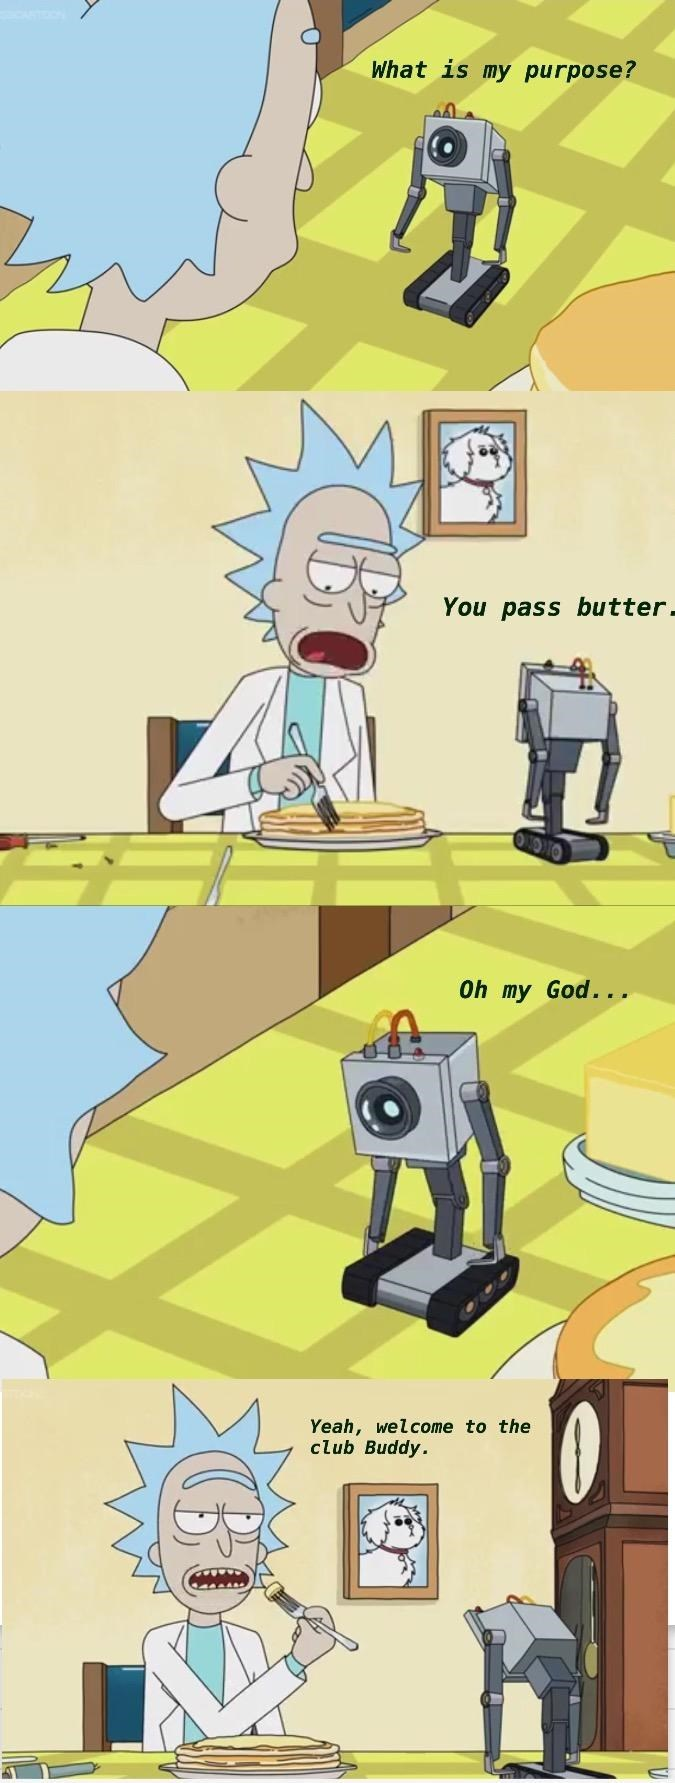 true-story-web-comics-cartoons-rick-and-morty-relatable